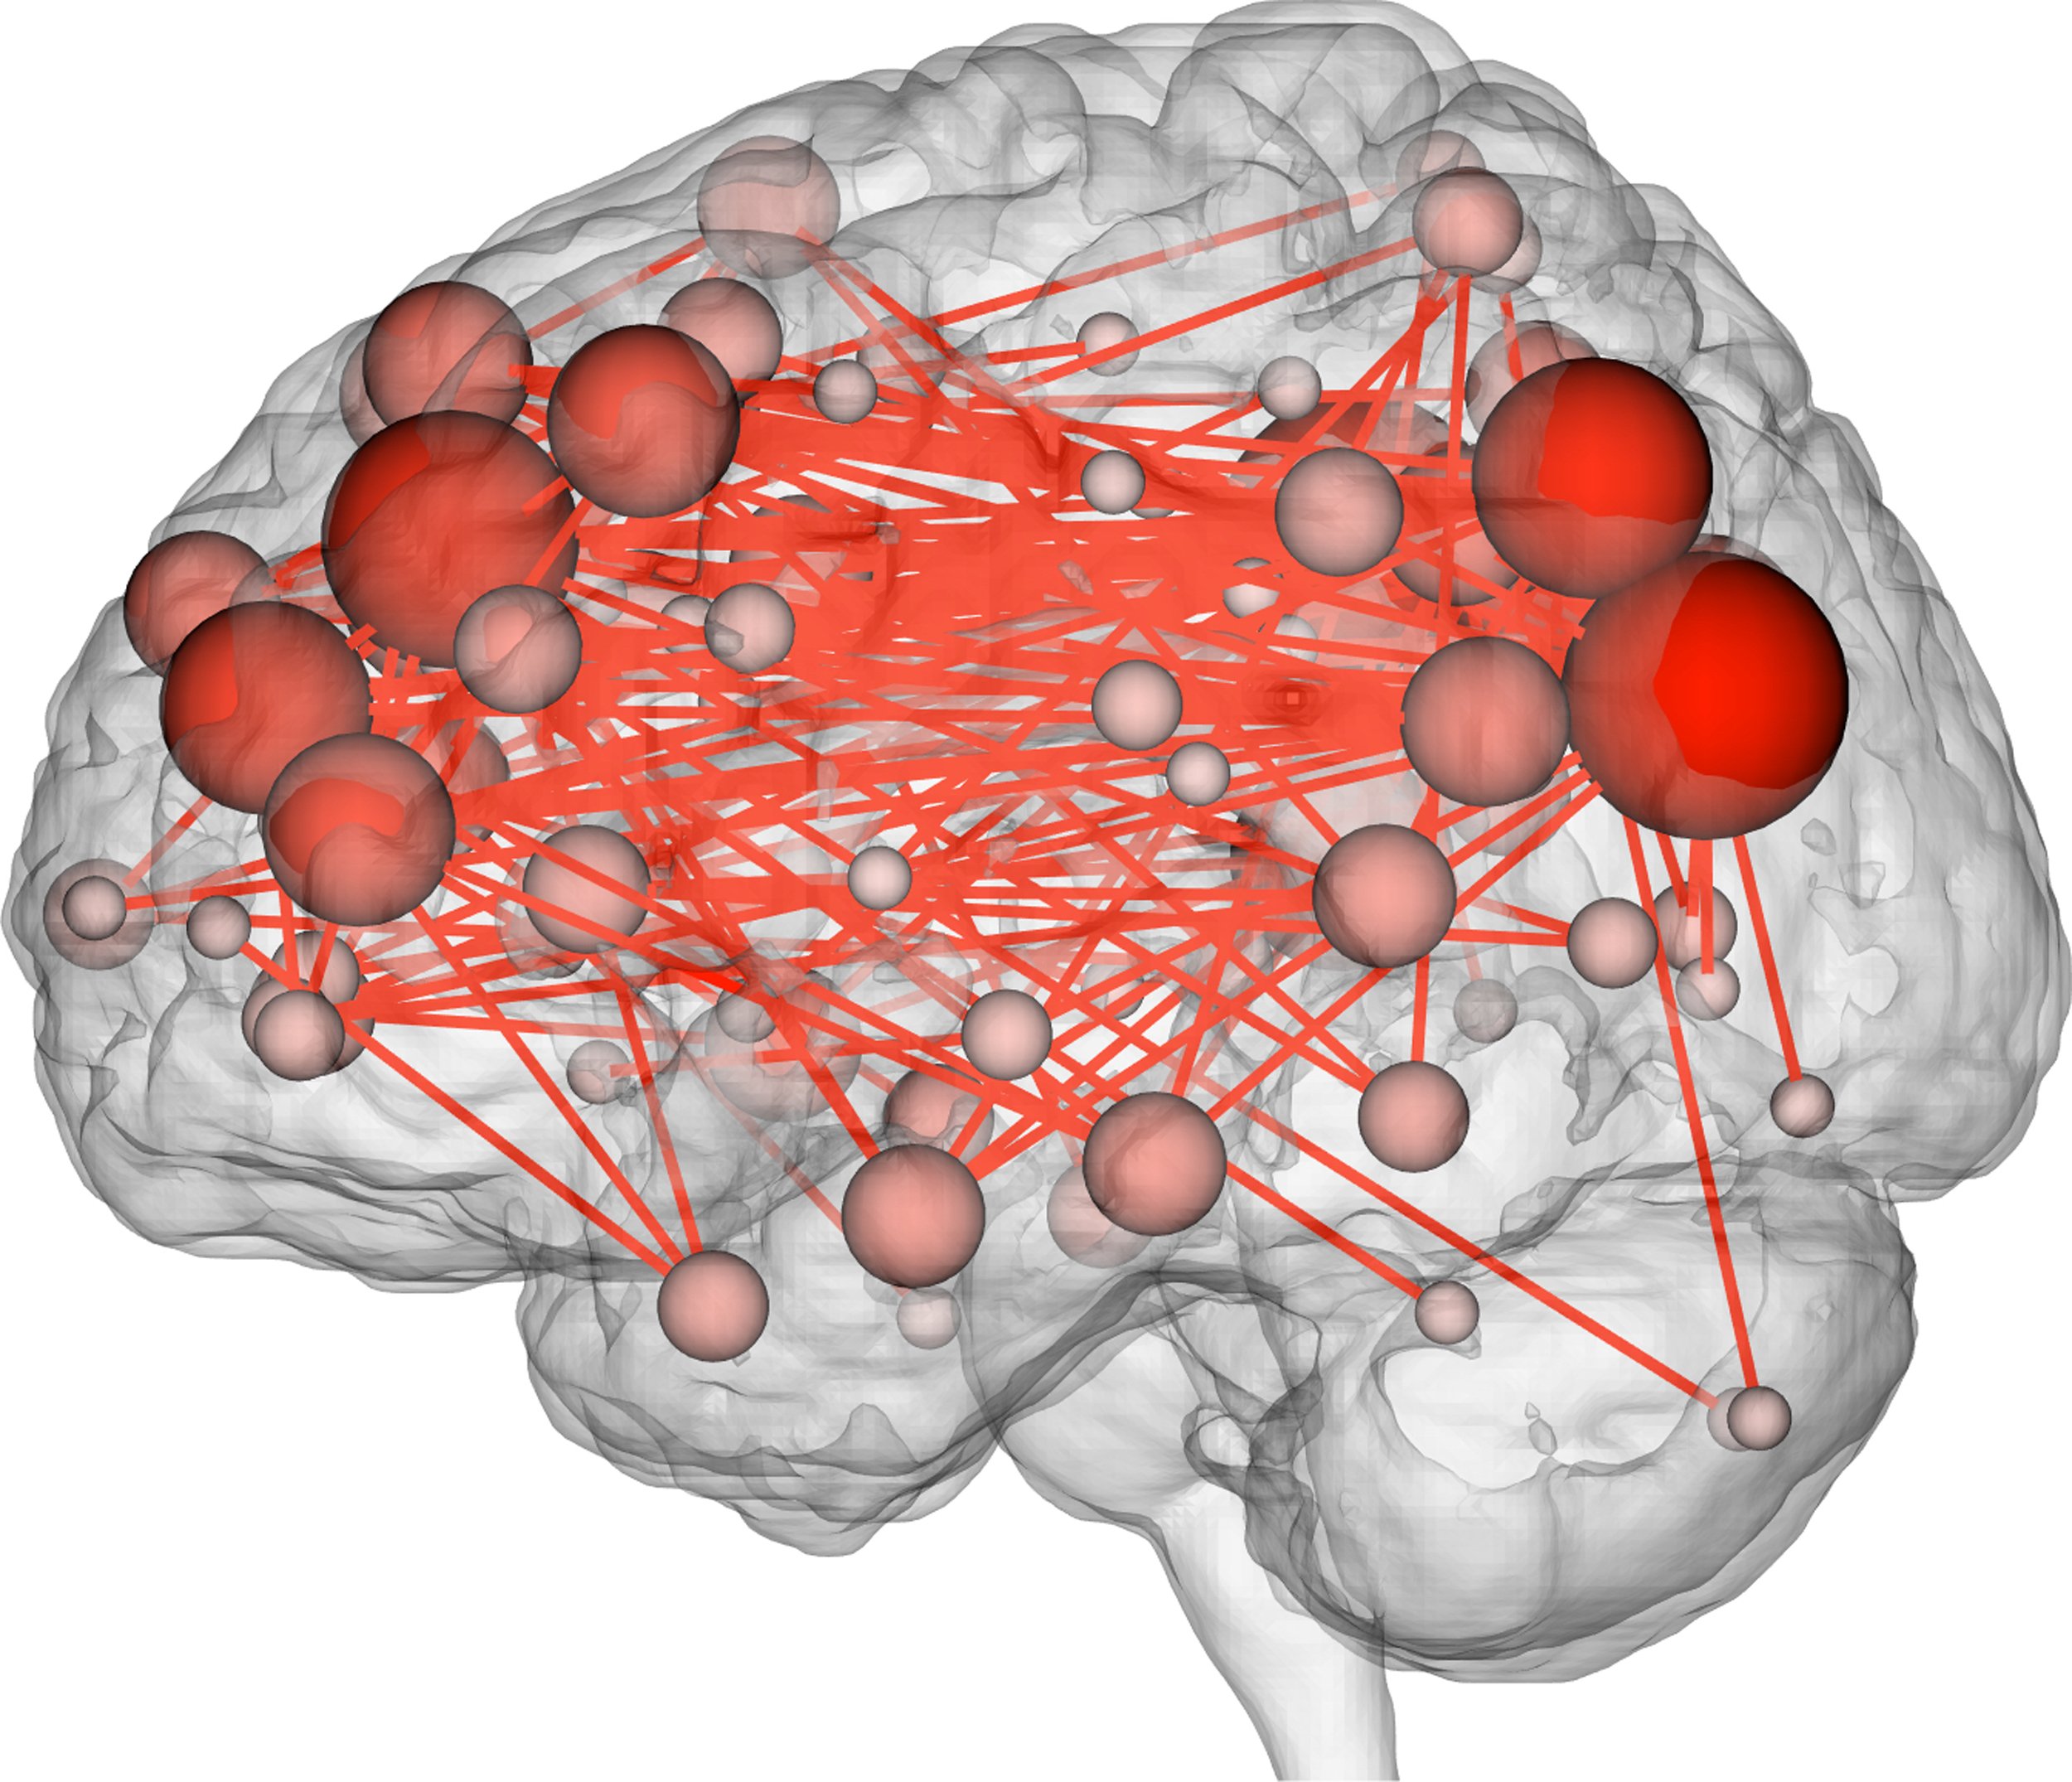 research papers brain fingerprinting Find new research papers in: physics chemistry biology polygraph , lie detection, polygraph, narco analysis, and 10 more brain mapping, brain fingerprinting.